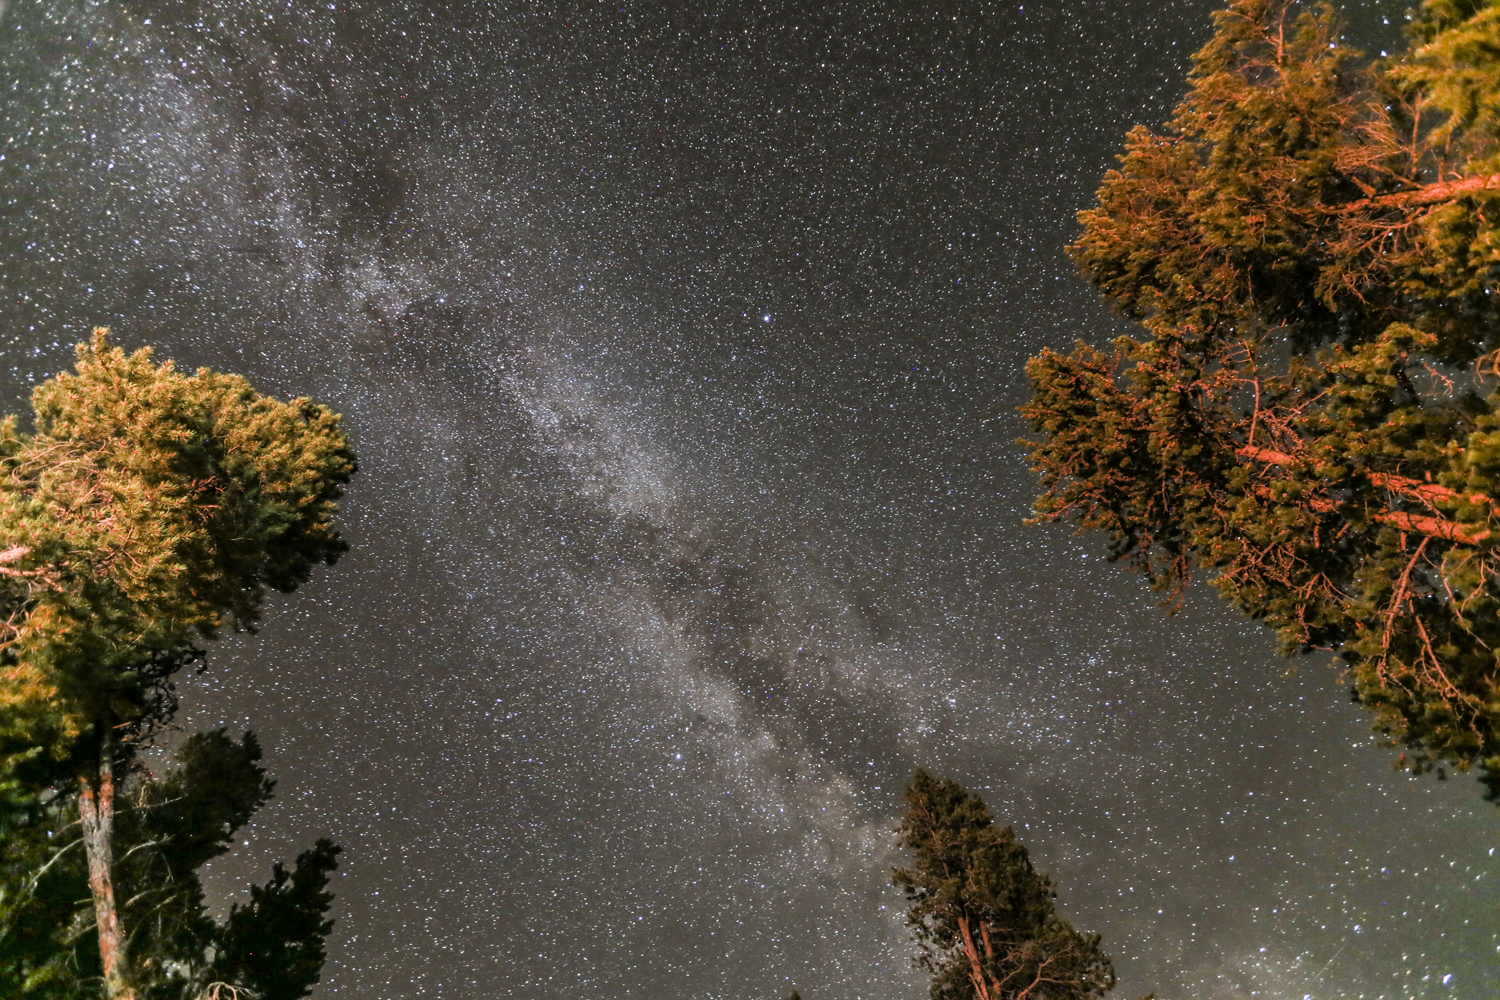 Like I mentioned before, I'm always mesmerized by this view. Looking straight up from our car at the camp site Sunday night.  Canon 6D, Canon 16-35mm f/2.8L @16mm (iso1600, f/2.8, 30s)